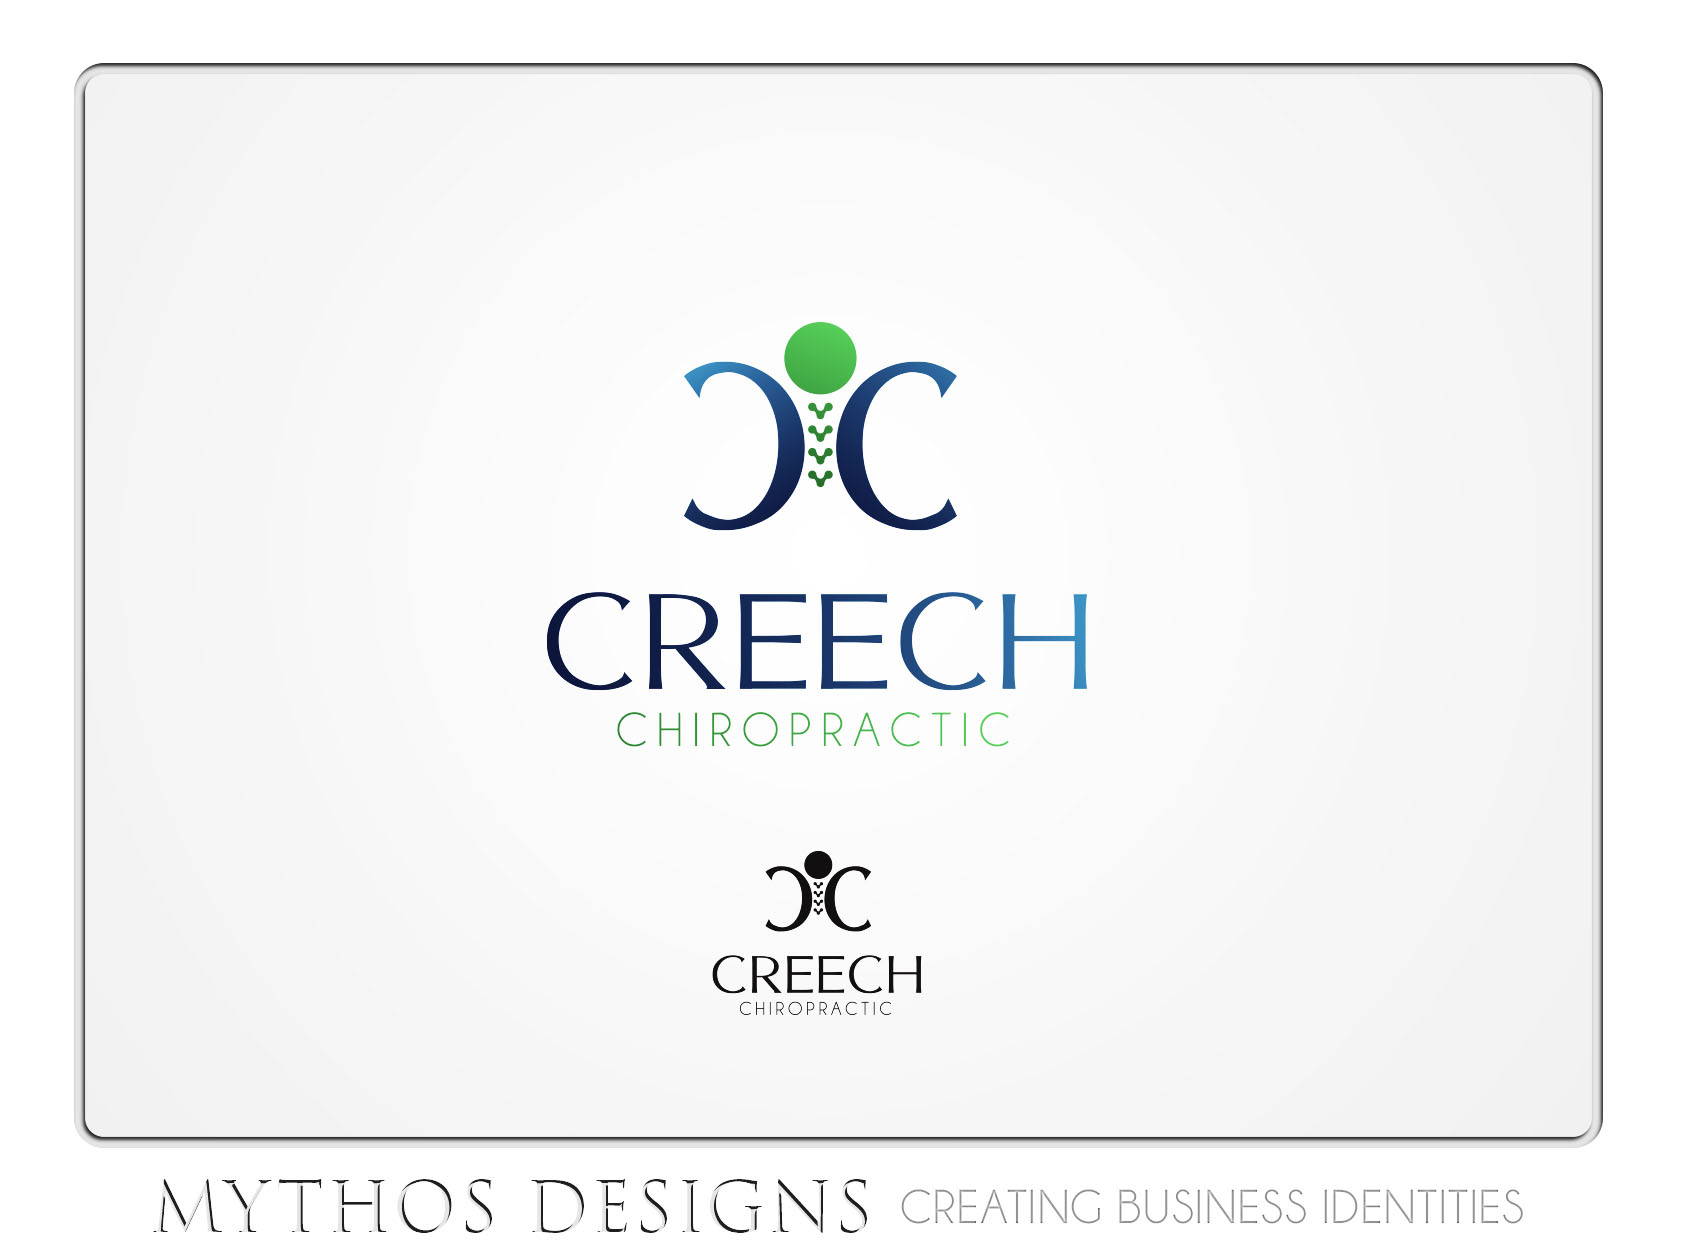 Logo Design by Mythos Designs - Entry No. 83 in the Logo Design Contest Imaginative Logo Design for Creech Chiropractic.